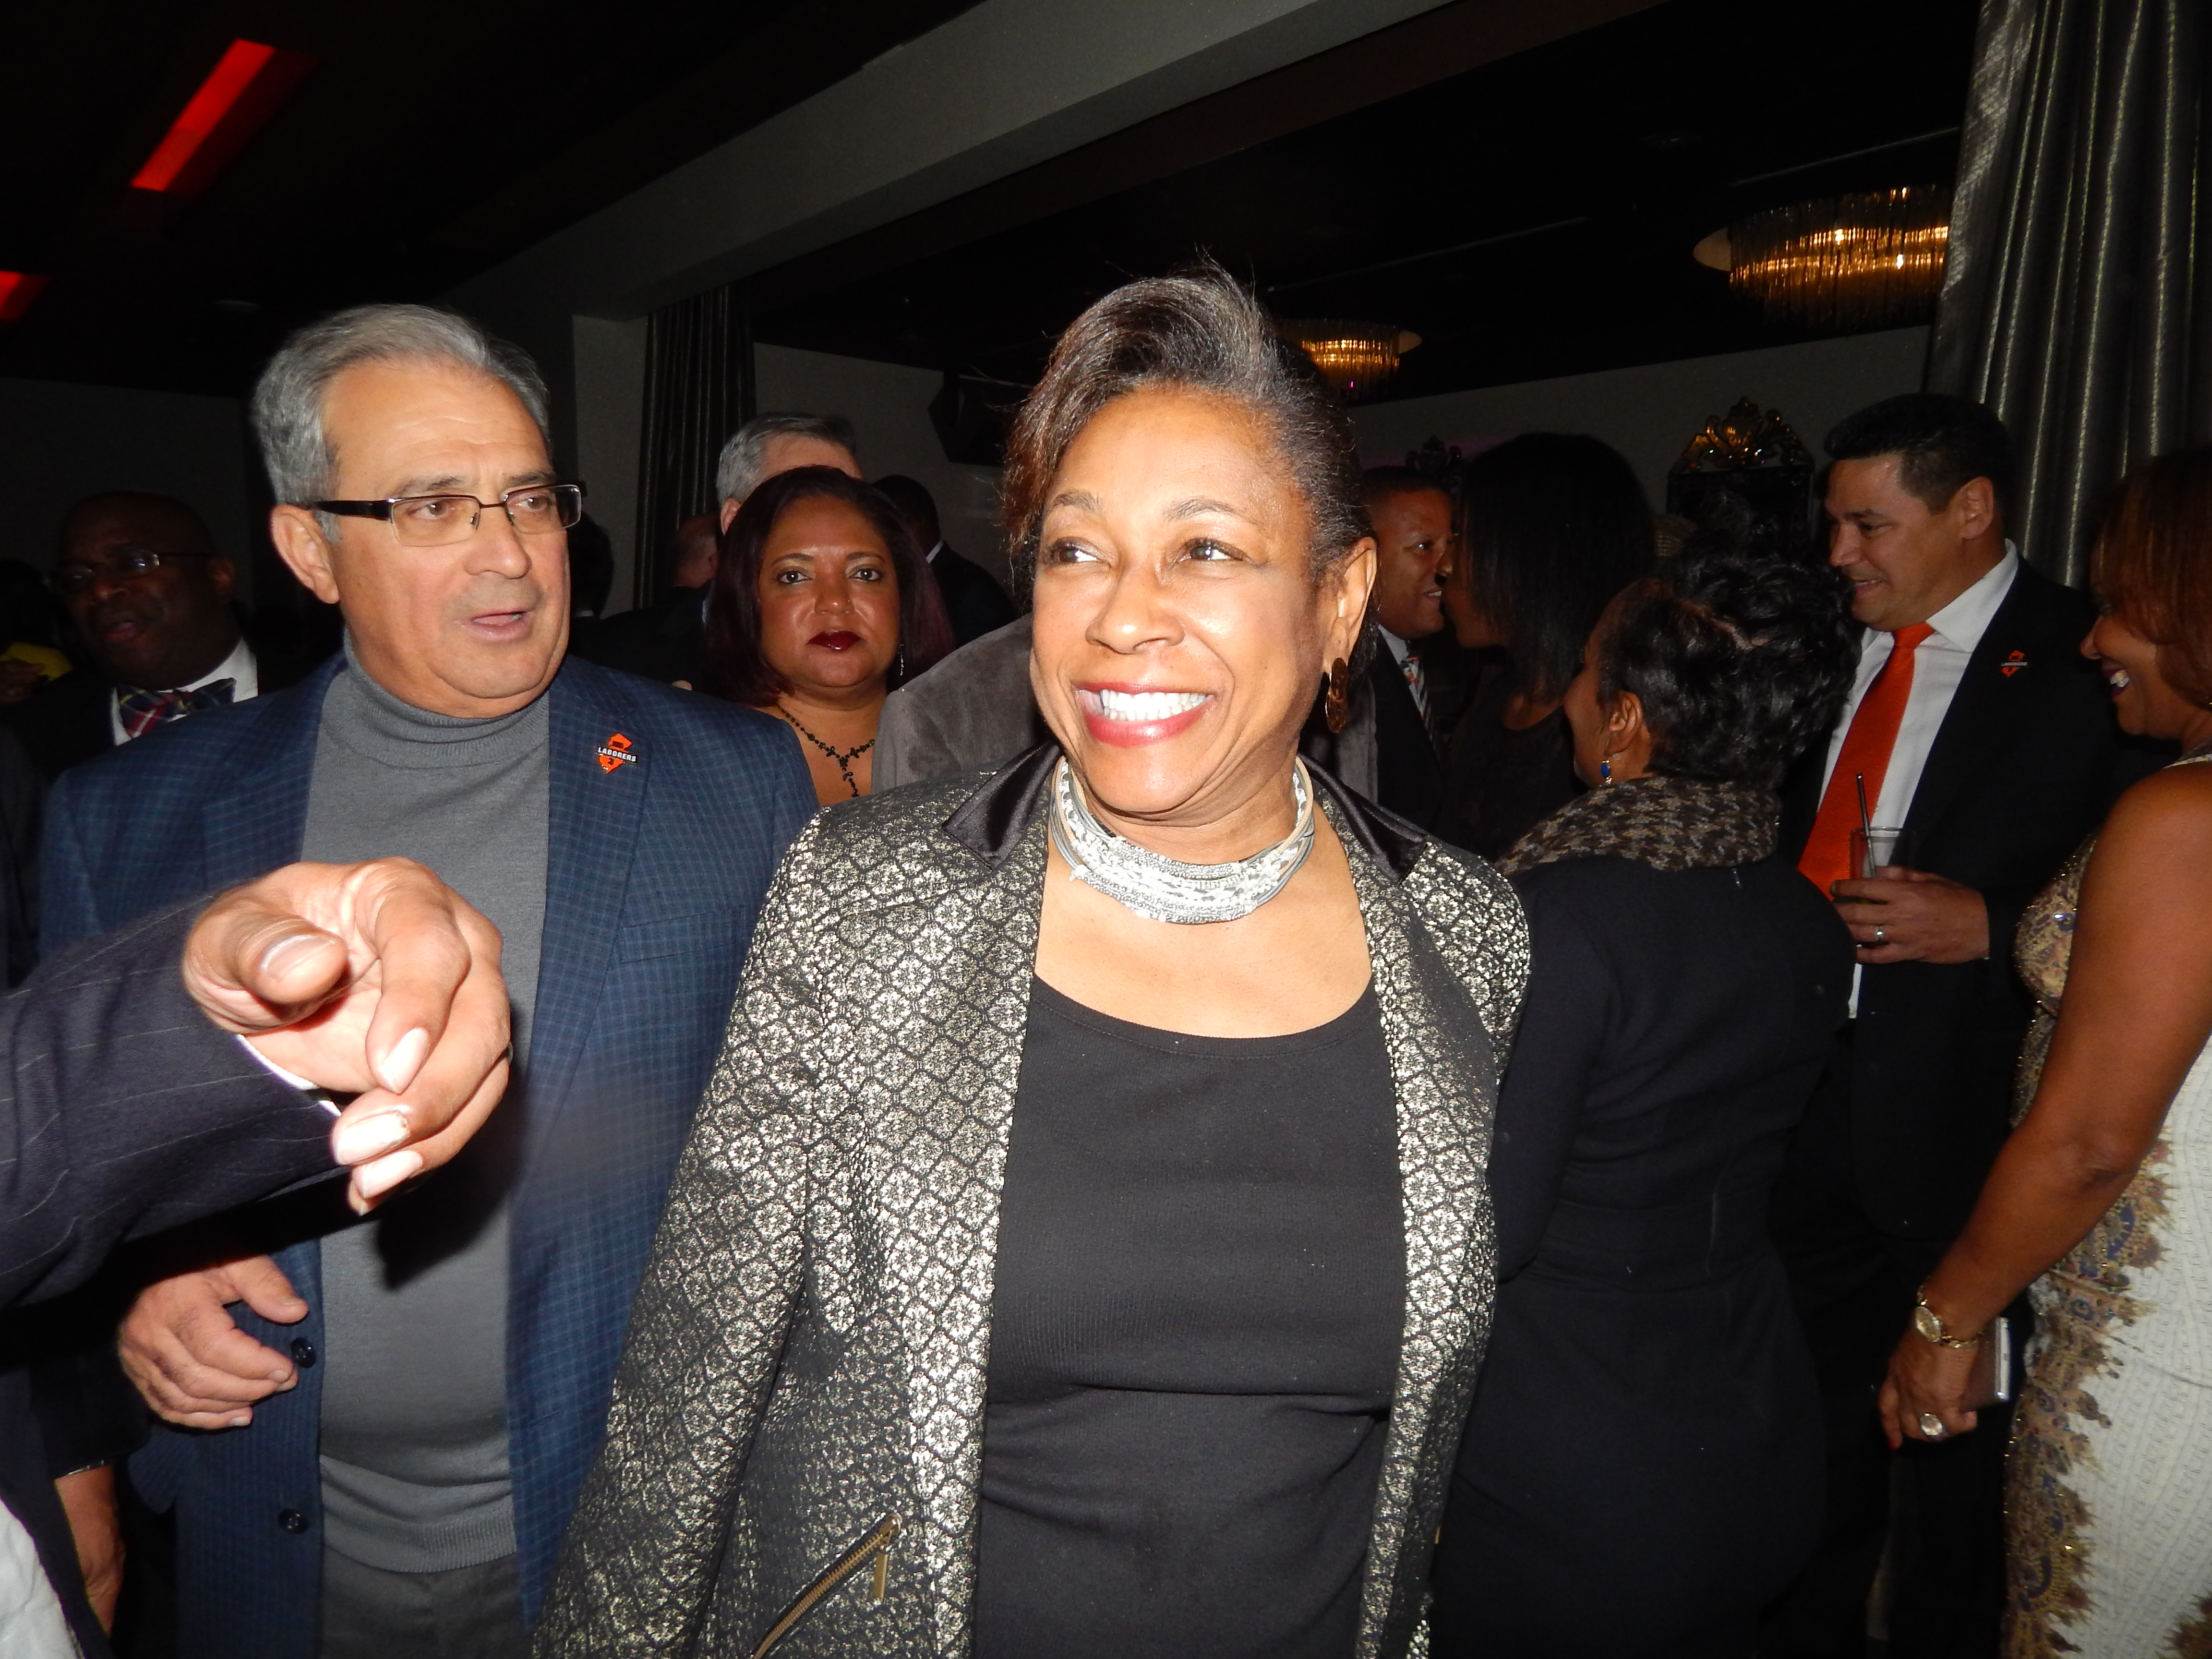 State Senator Sandra Cunningham (D-31) is allegedly weighing a run for mayor in Jersey City.